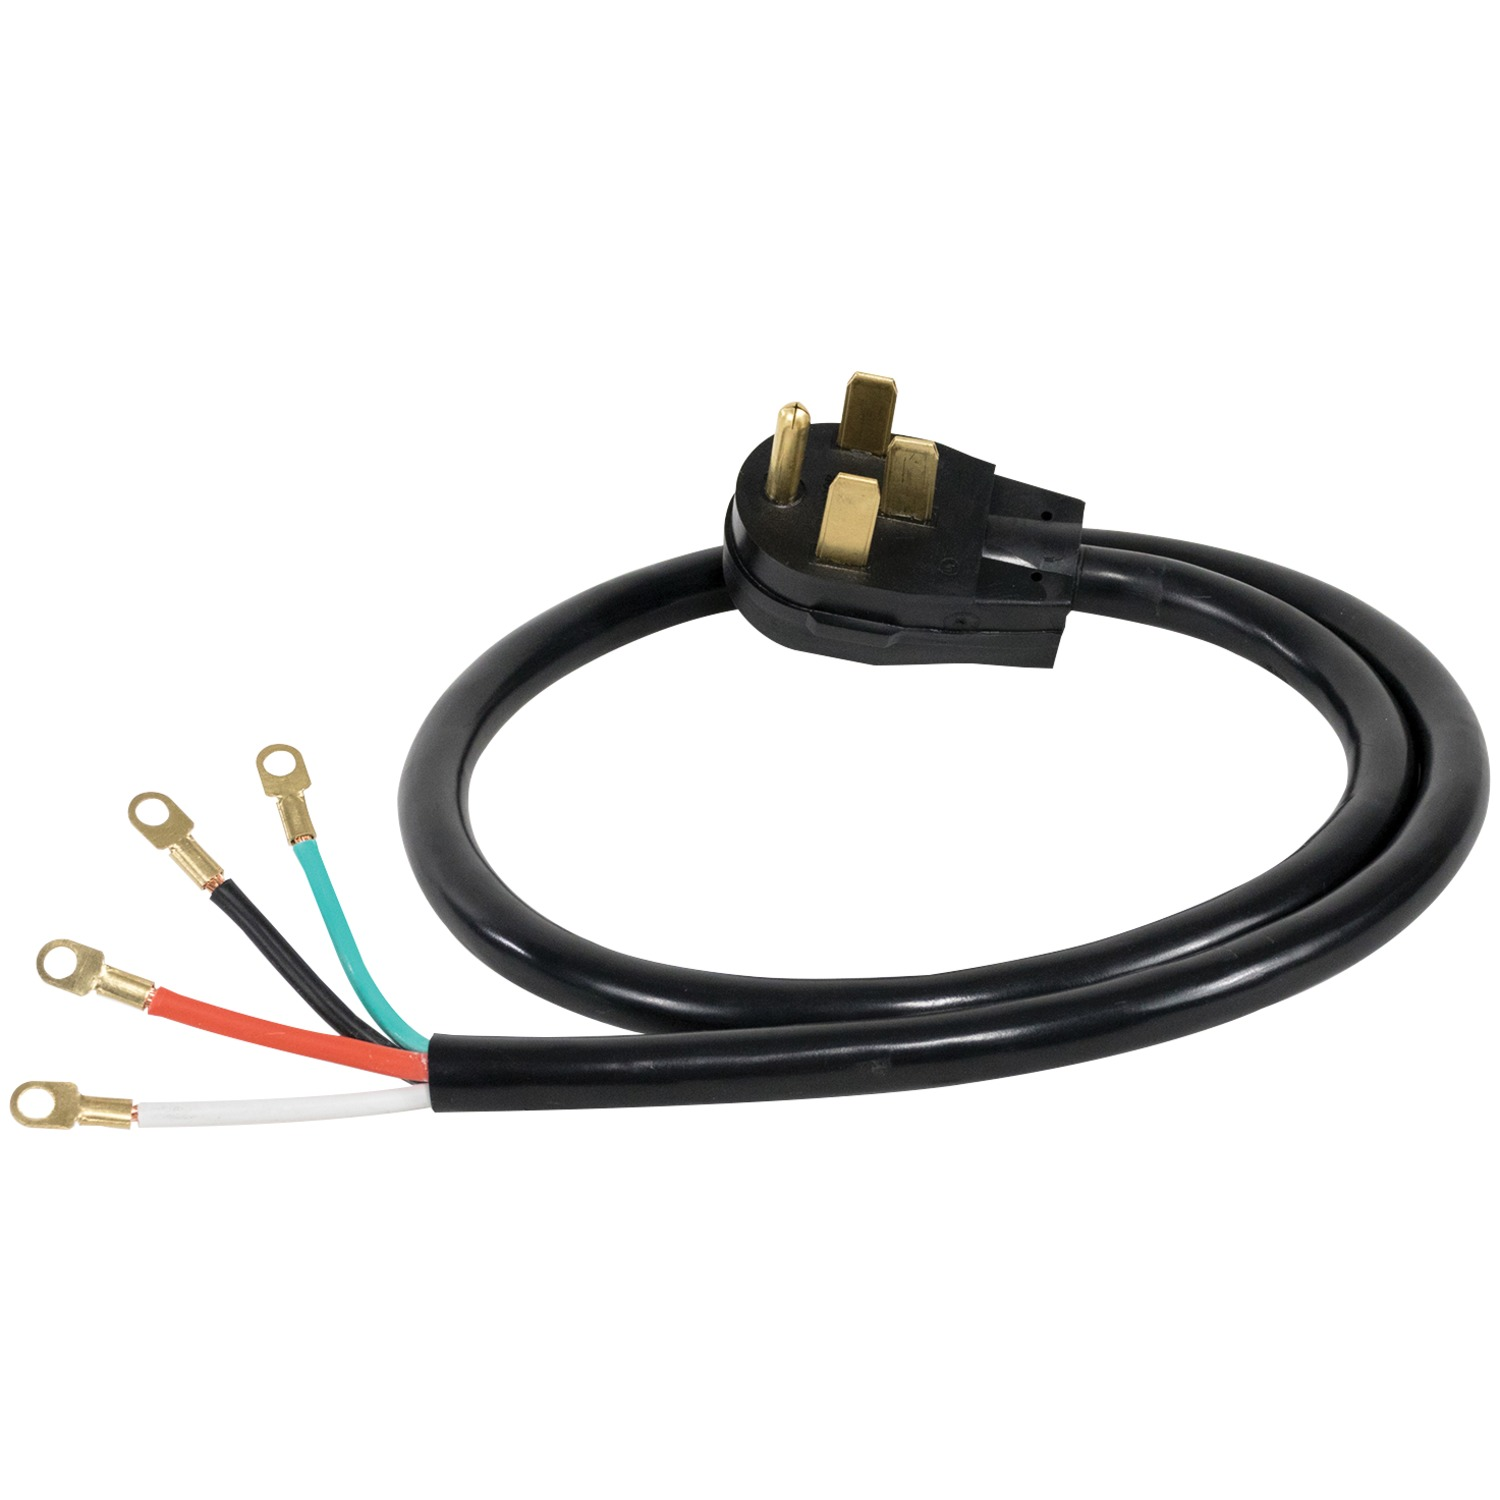 Certified Appliance Accessories 90 2080 4 Wire Closed Eyelet 50 Amp Wiring A Outlet For Stove Range Cord 4ft